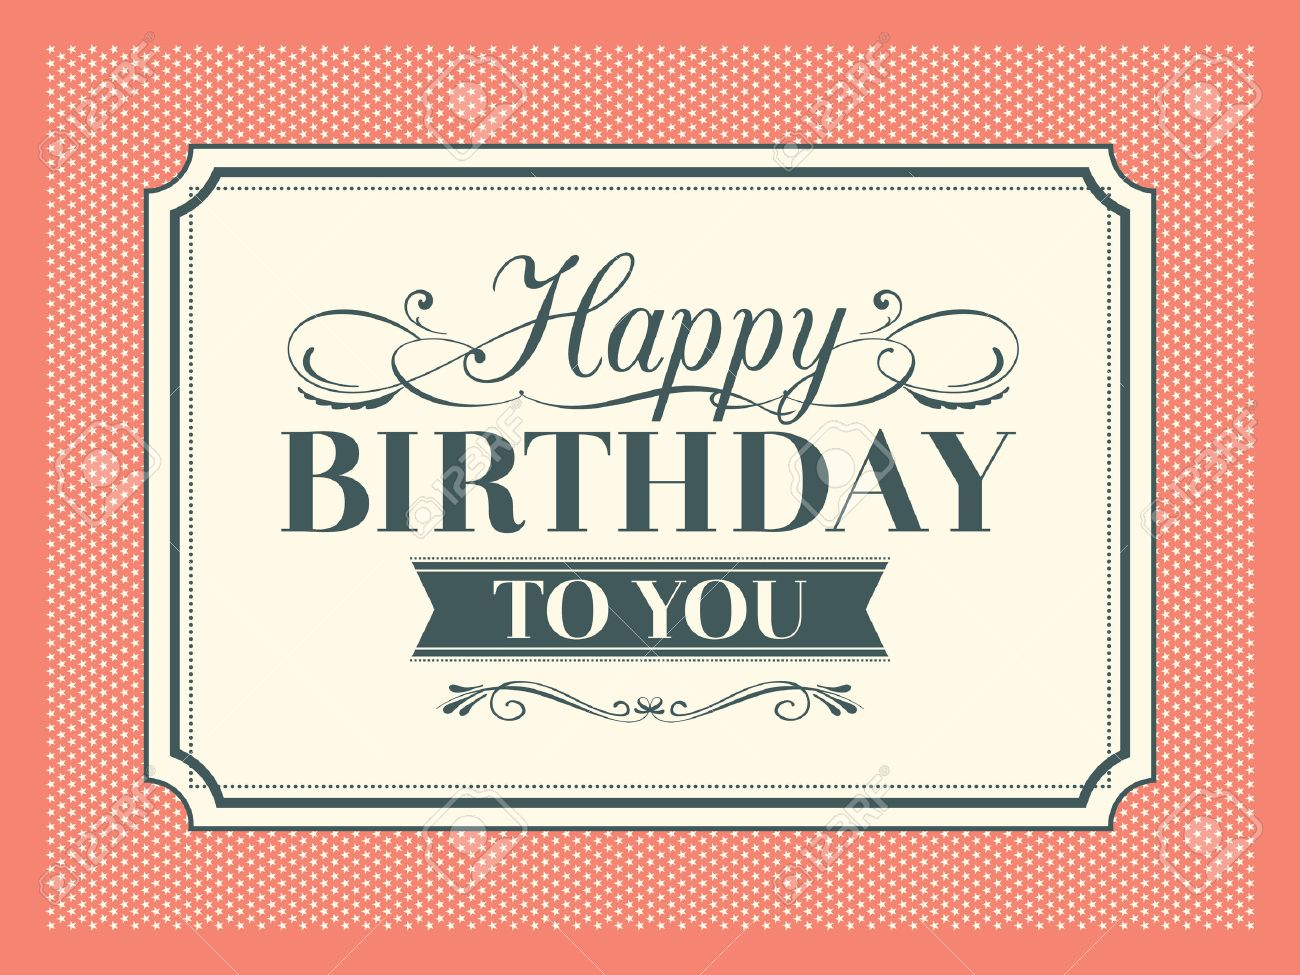 Vintage Happy Birthday Card Frame Design Royalty Free Cliparts Vectors And Stock Illustration Image 25948119